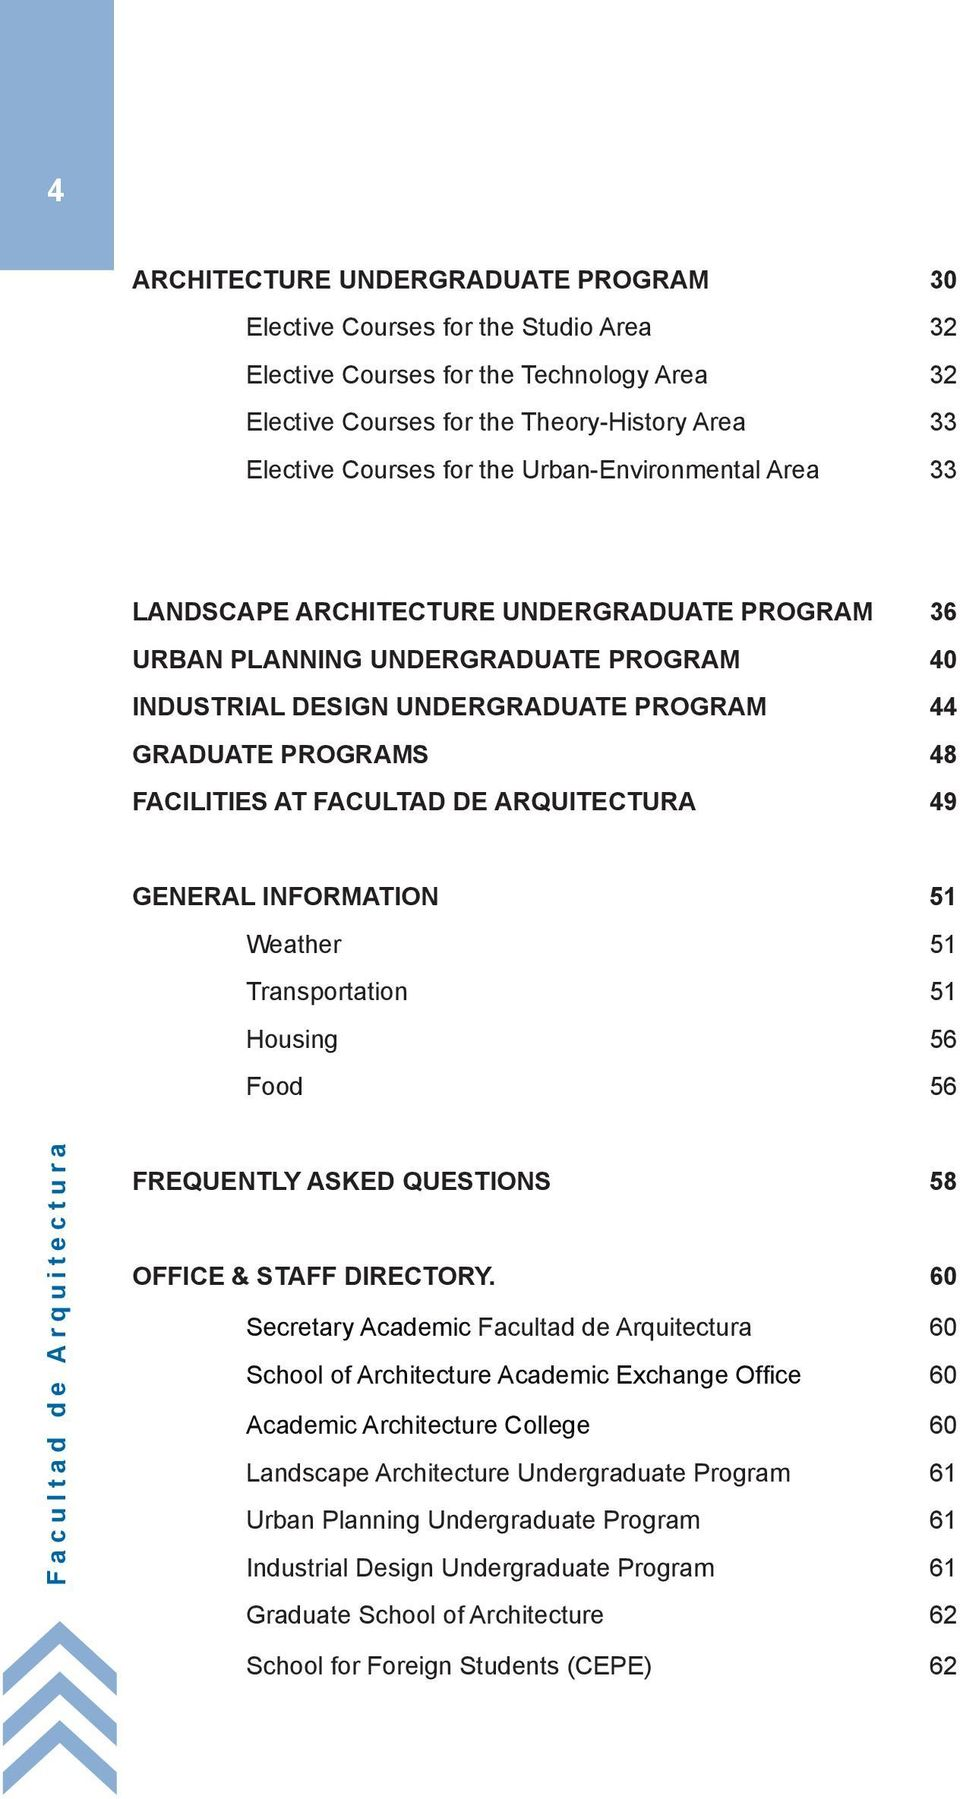 FACULTAD DE ARQUITECTURA 49 GENERAL INFORMATION 51 Weather 51 Transportation 51 Housing 56 Food 56 Facultad de Arquitectura FREQUENTLY ASKED QUESTIONS 58 OFFICE & STAFF DIRECTORY.